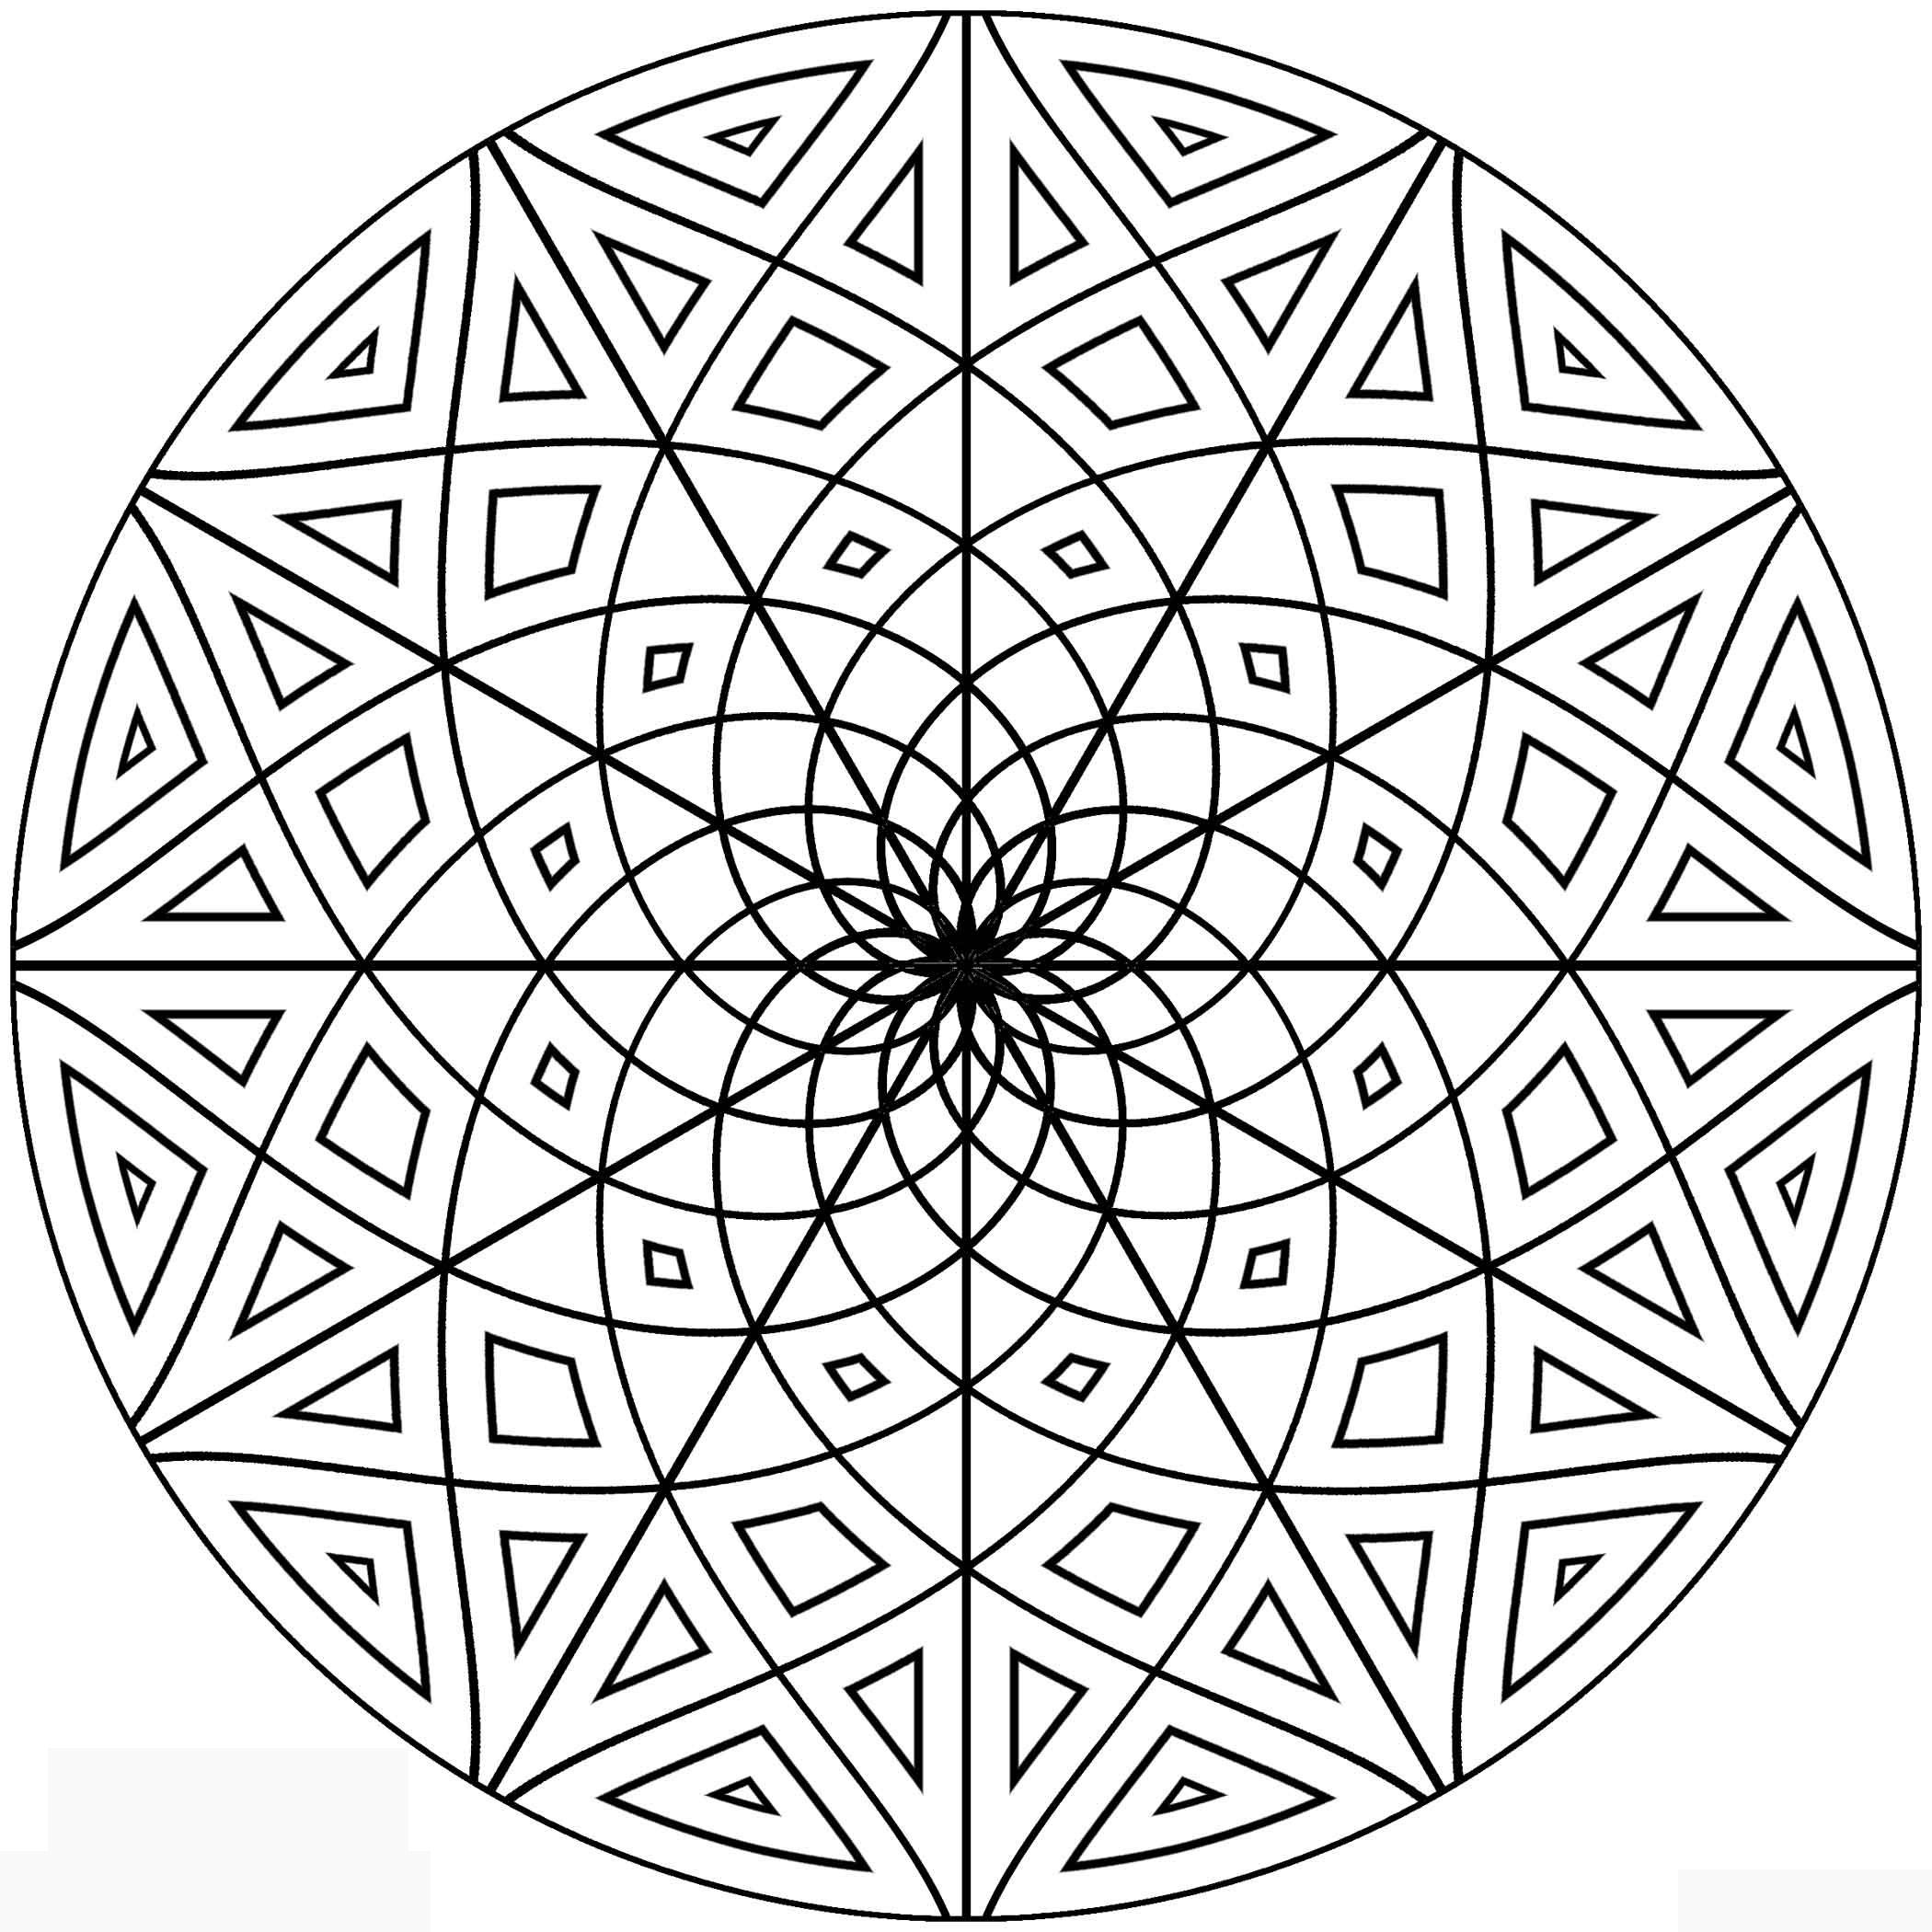 Geometric Detailed Coloring Pages Geometric Coloring Pages Abstract Coloring Pages